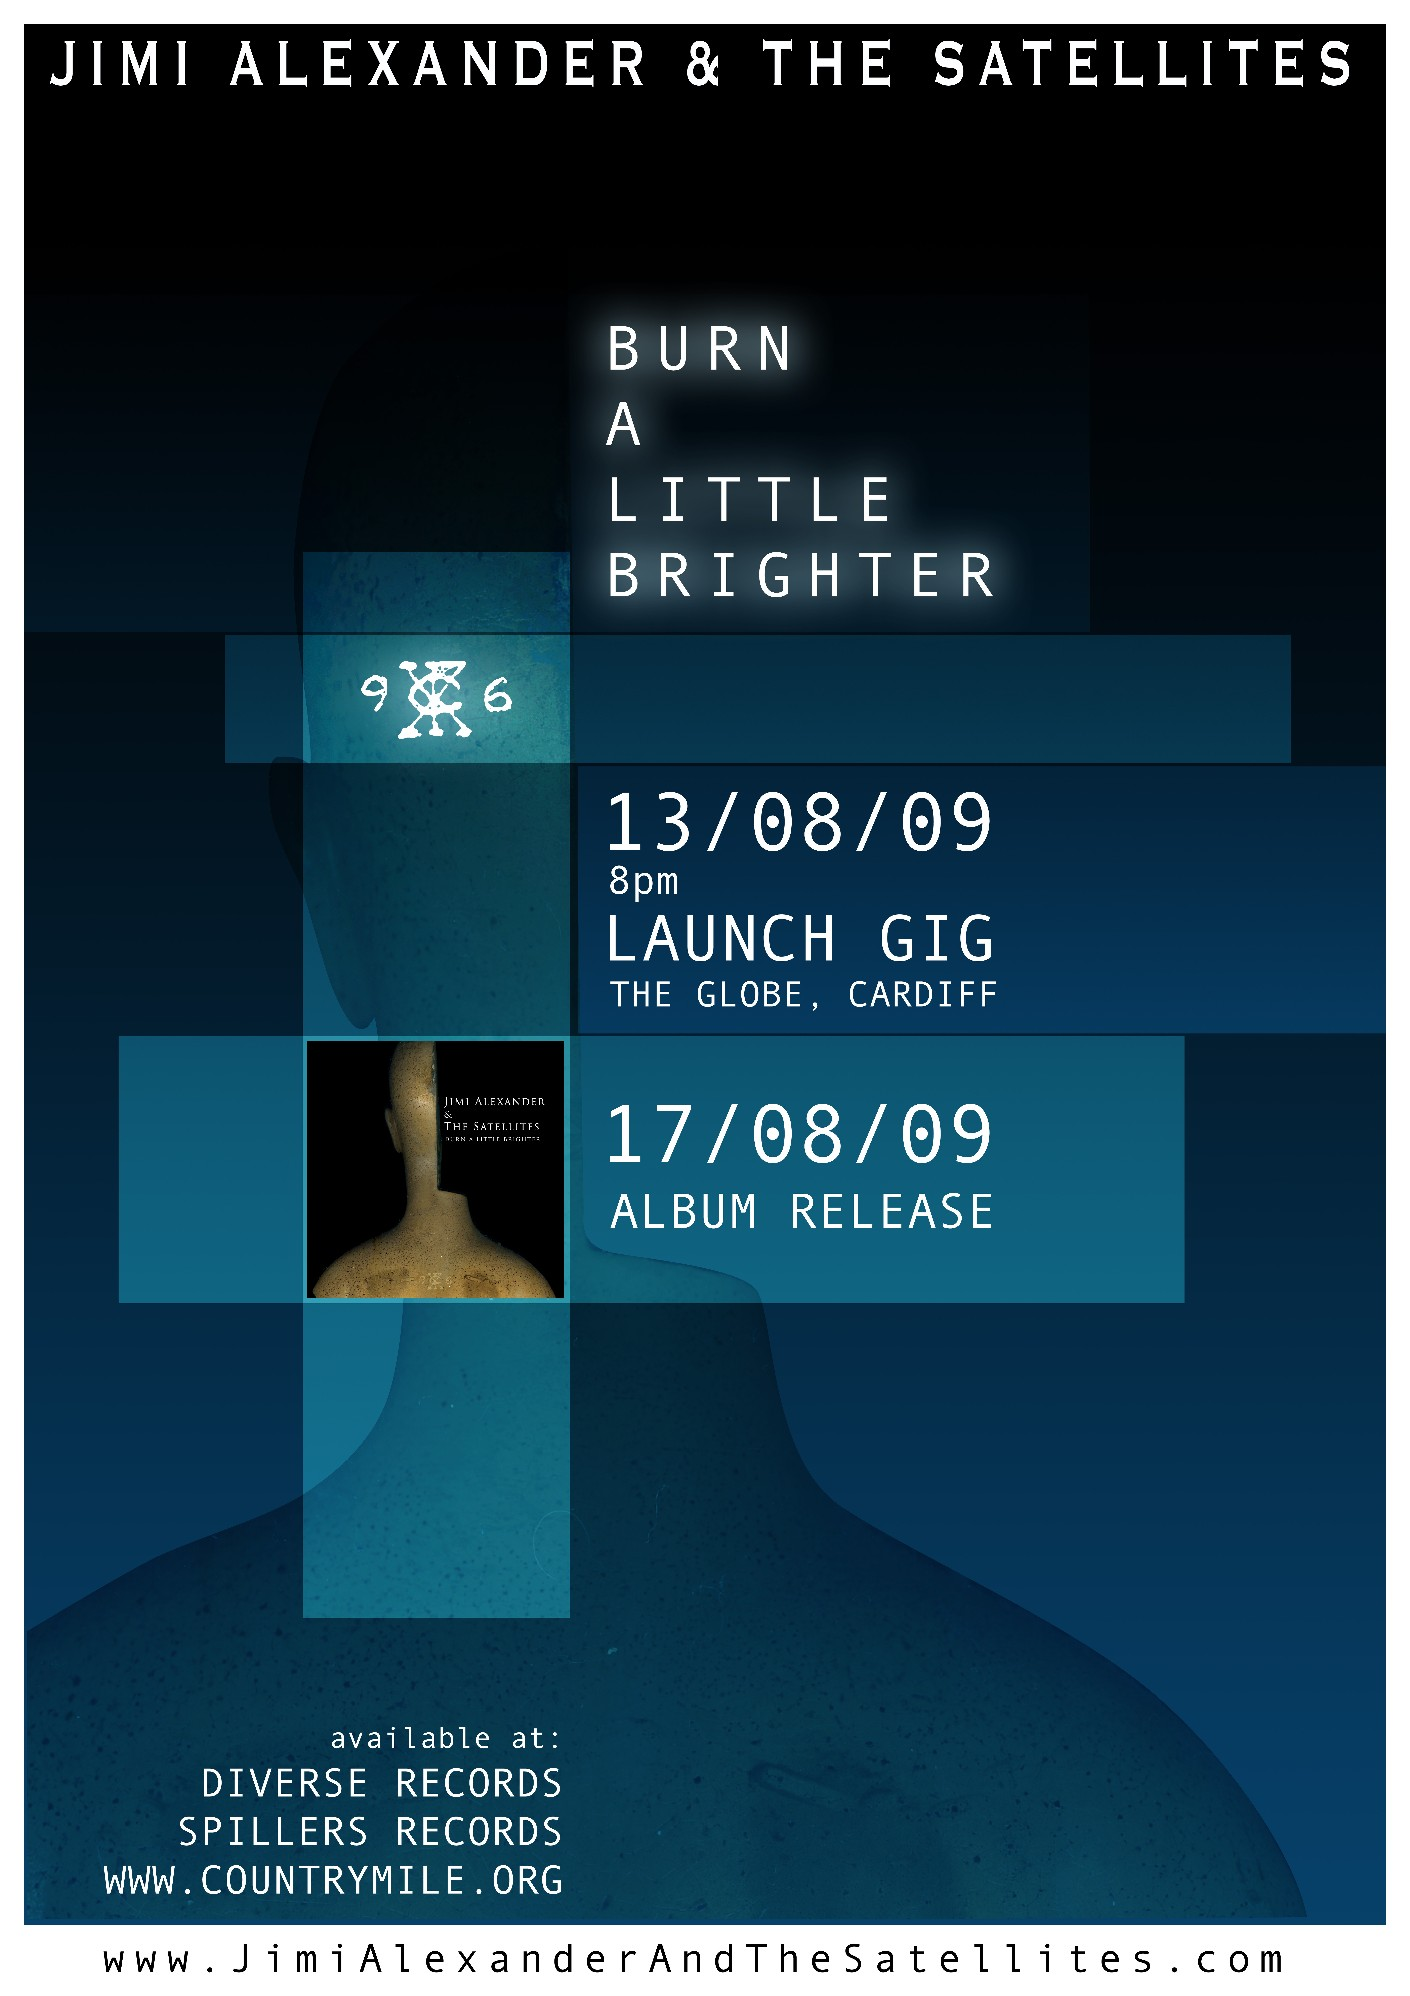 poster_burn_a_little_brighter_2small02